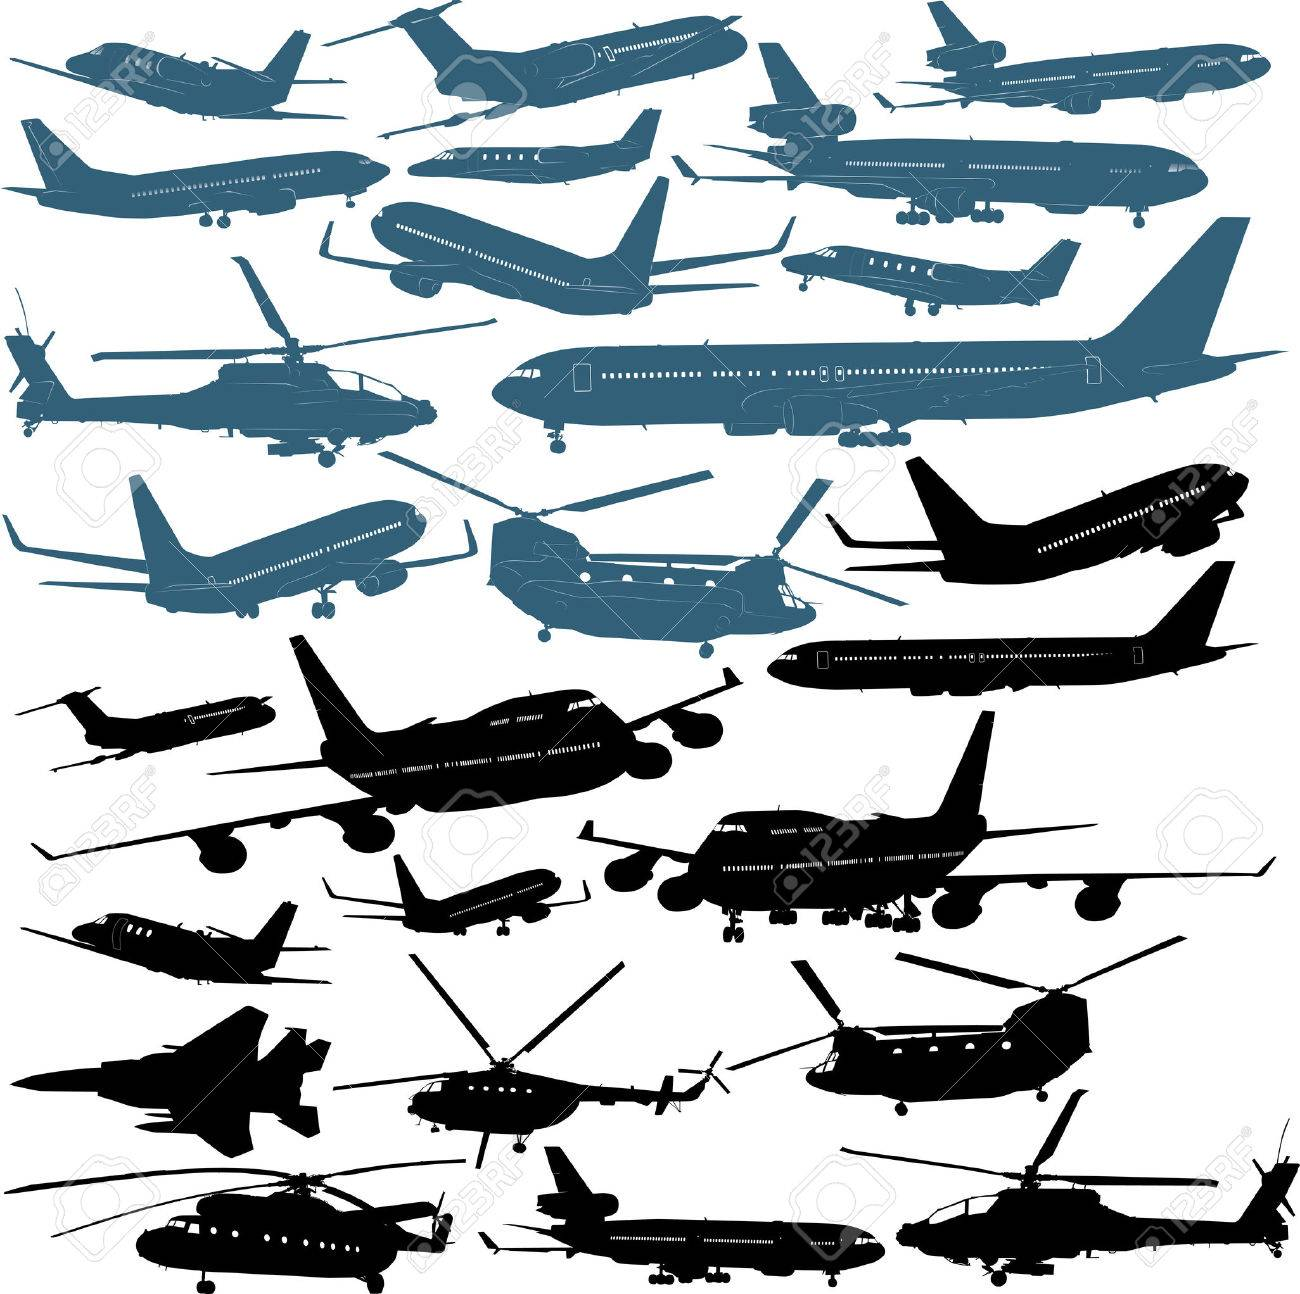 Vector illustrations of passenger airliners, military helicopters Stock Vector - 5333635